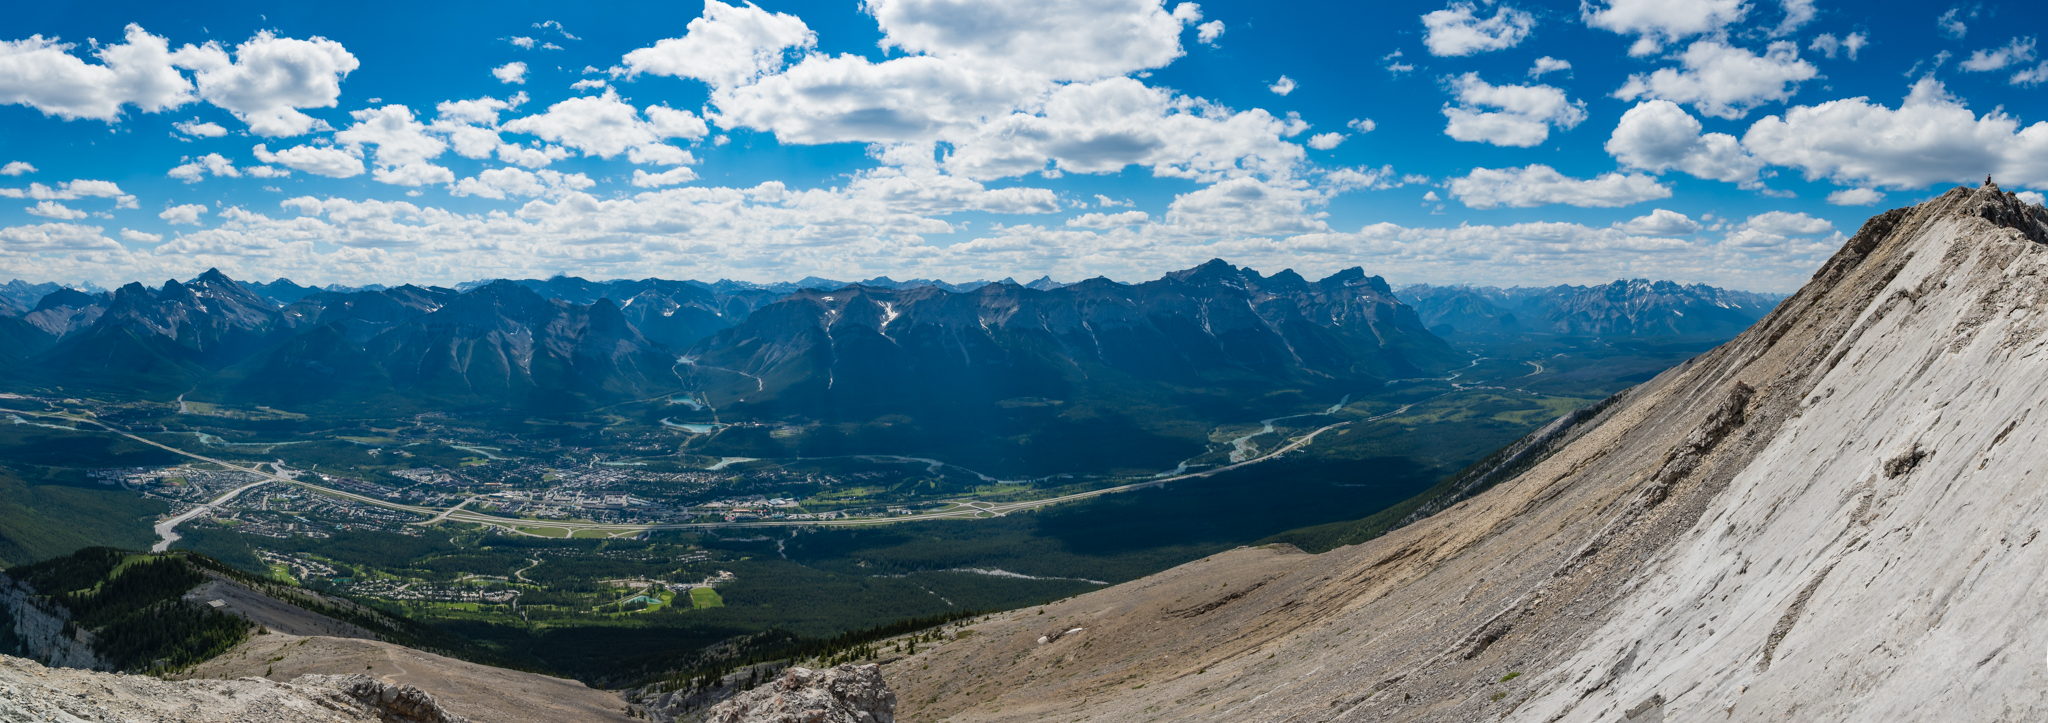 2017 07 03 Mount Lady Macdonald-13.jpg